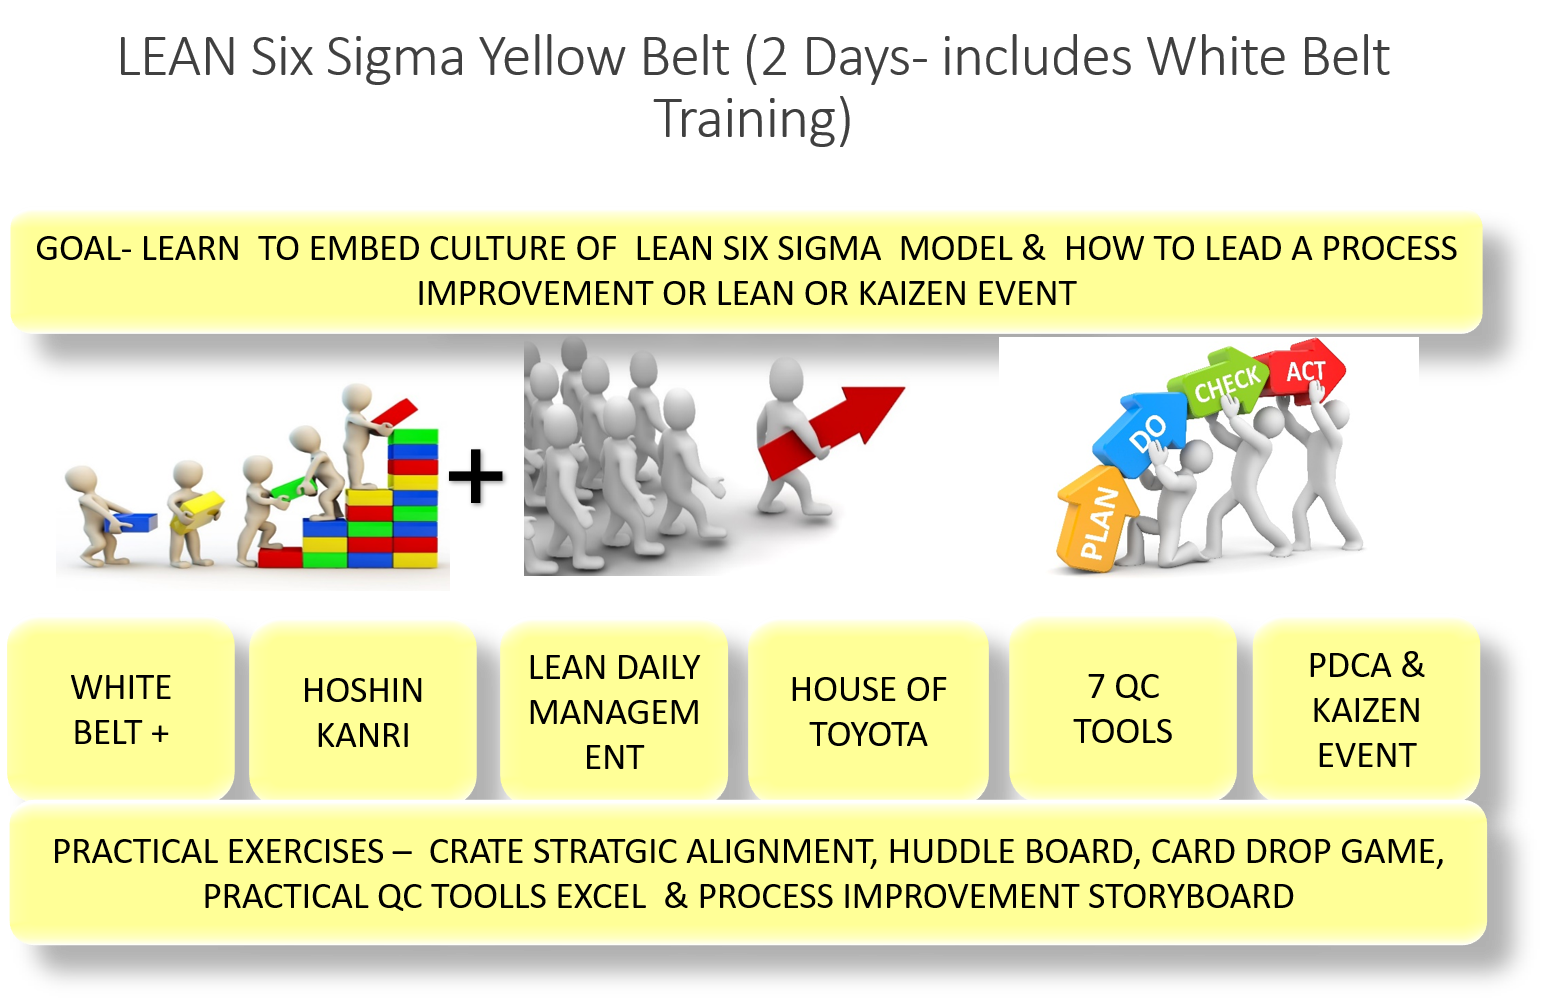 PMI LAKESHORE ONTARIO CHAPTER PRESENTS LEAN SIX SIGMA (LEGO) YELLOW BELT CERTIFICATION, 2 DAYS, APRIL 2 & 3, 2020